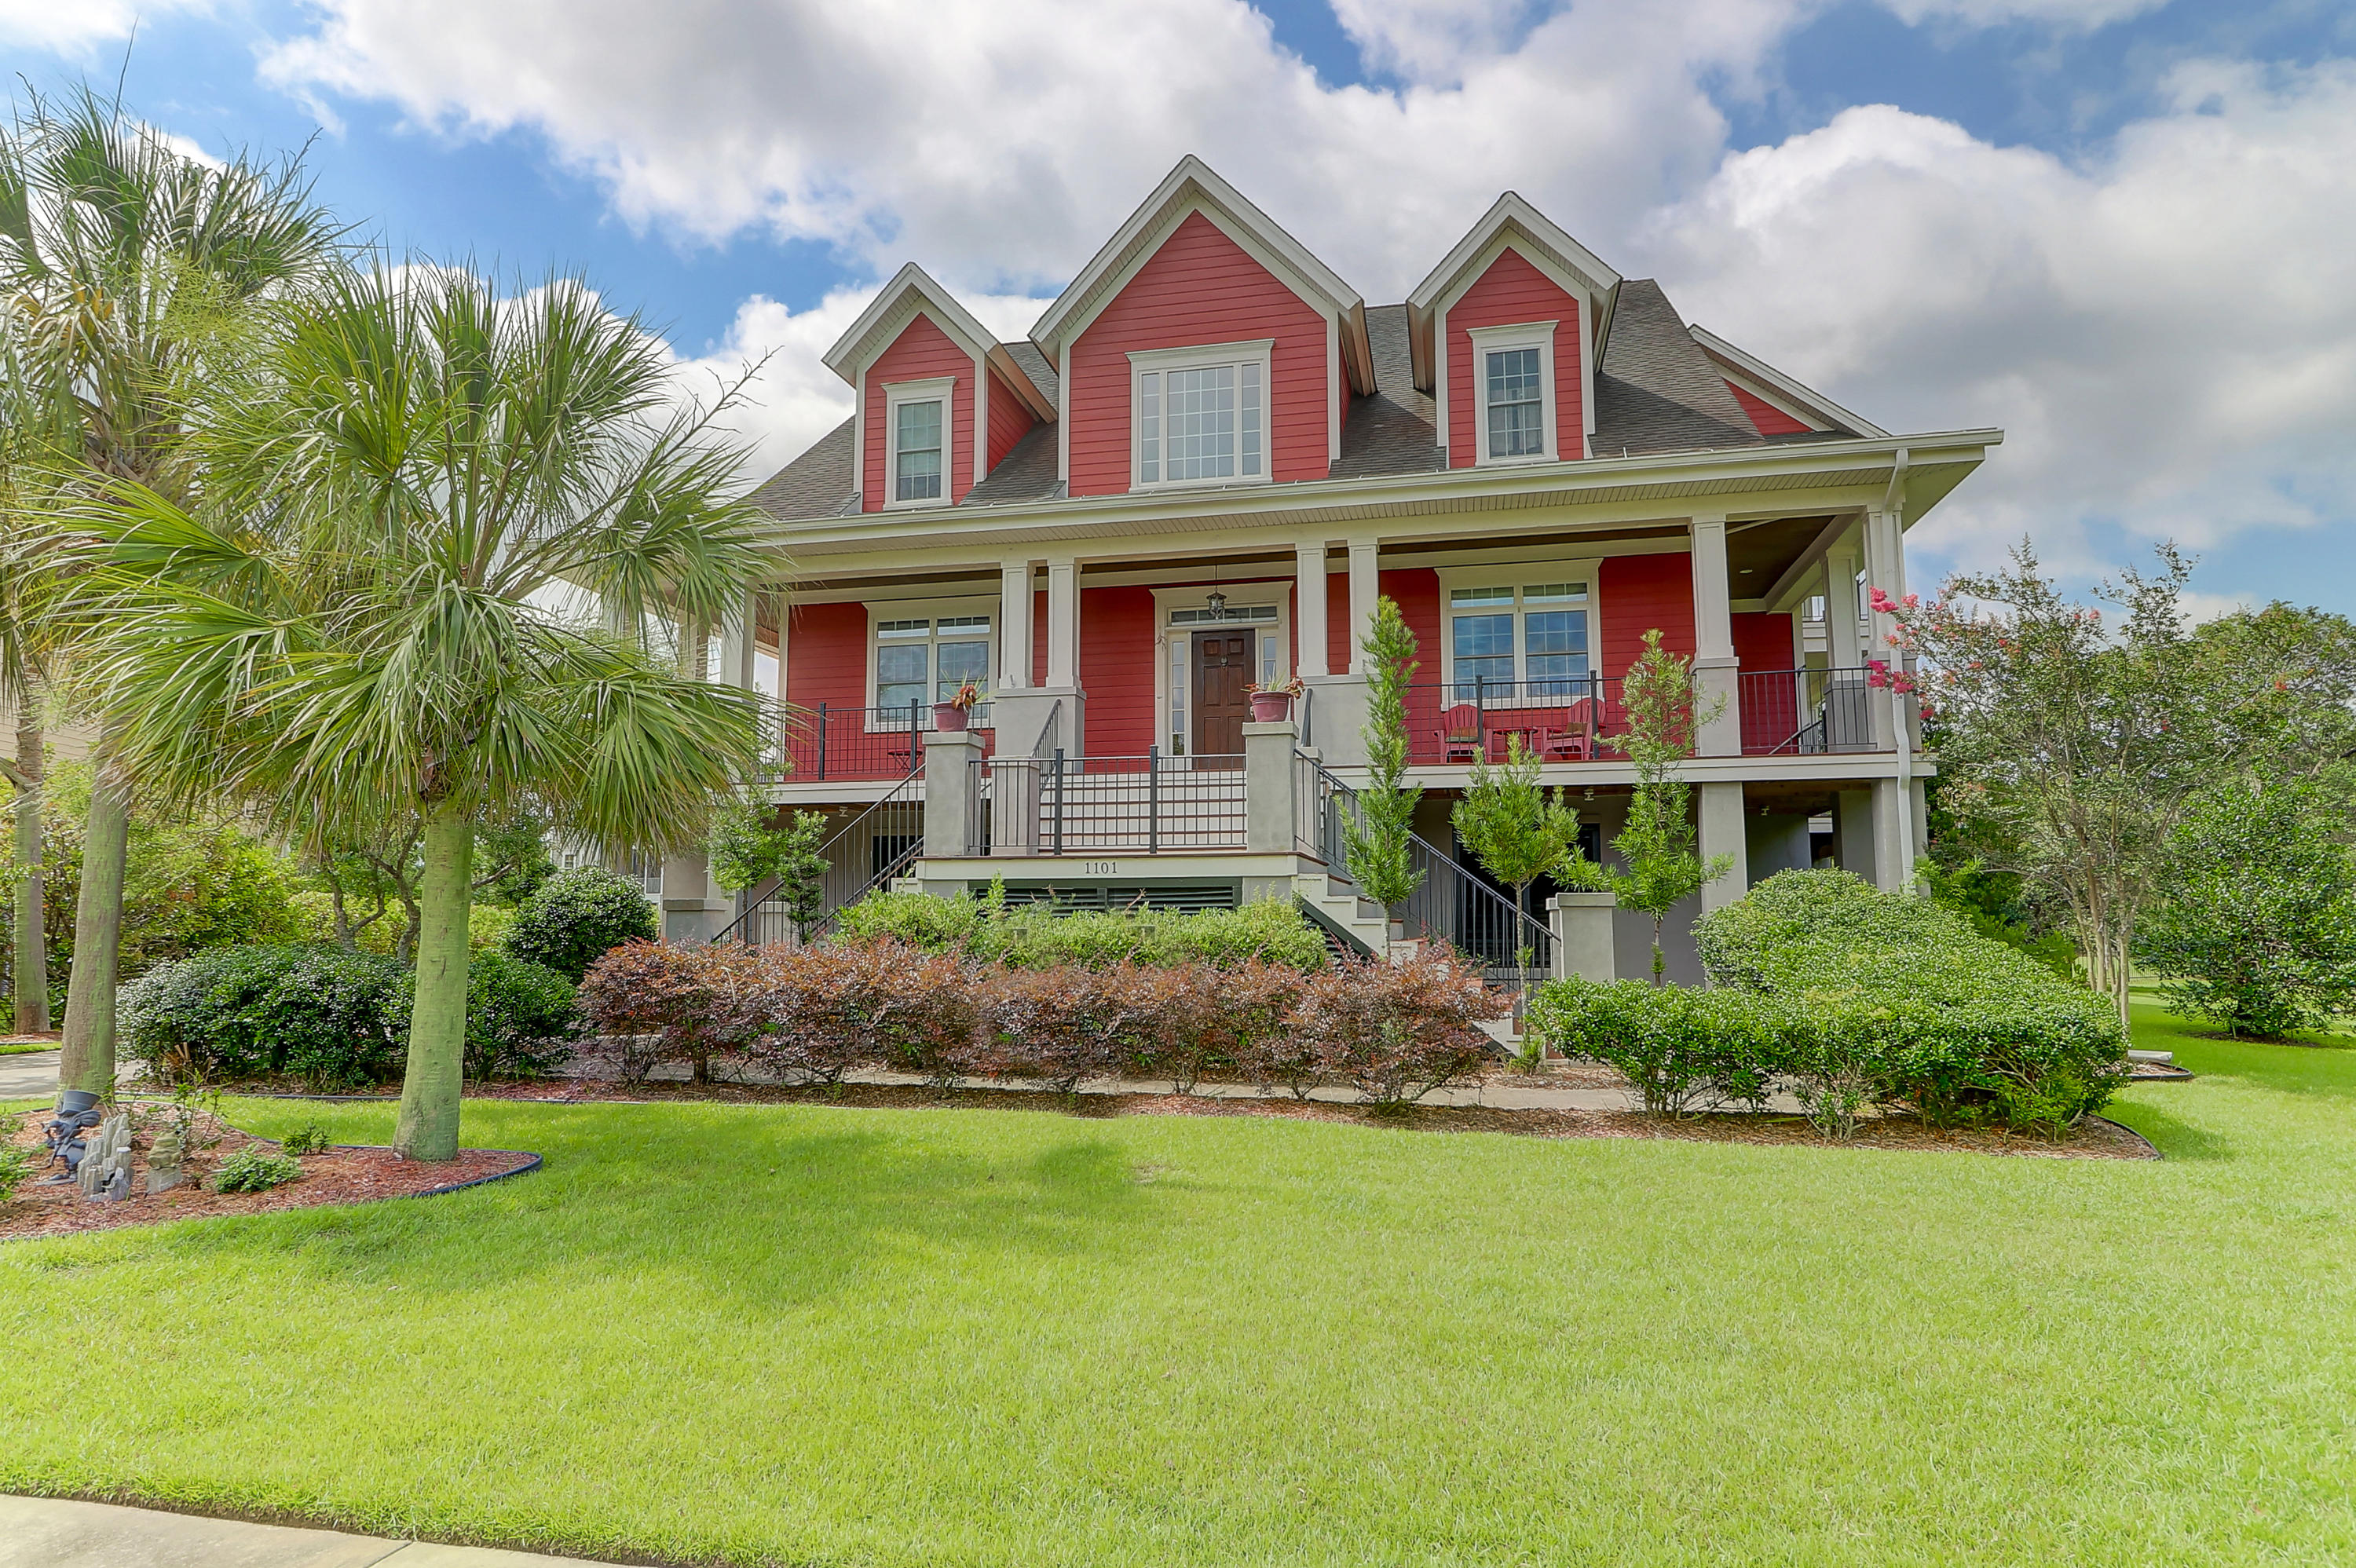 Beresford Creek Landing Homes For Sale - 1101 Beresford Run, Charleston, SC - 30